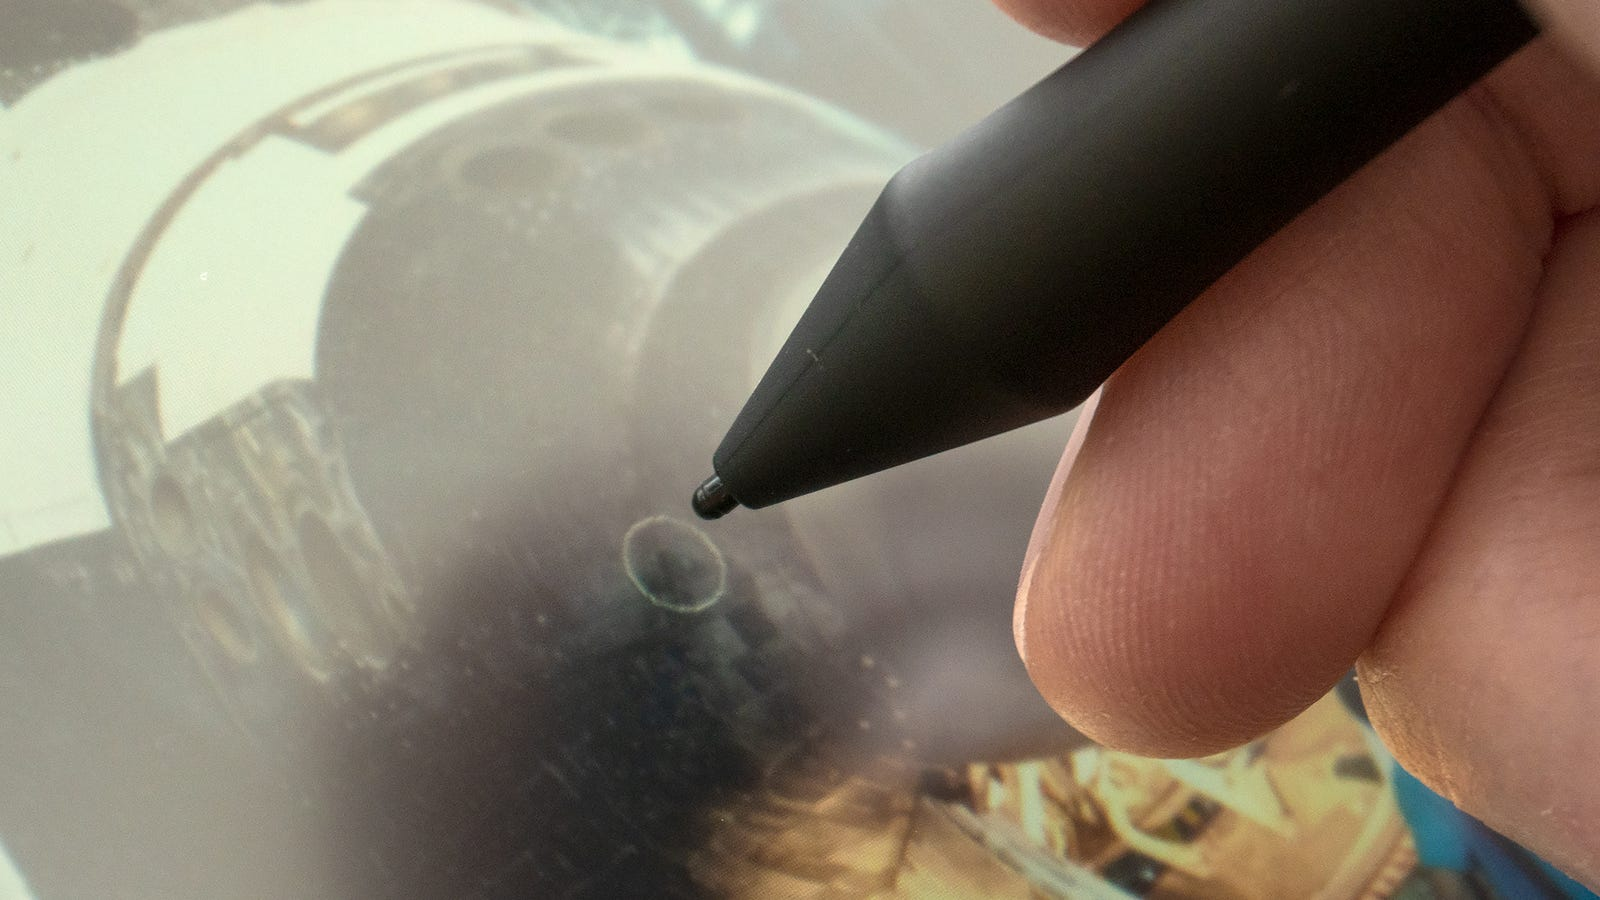 As with last year's Wacom Cintiq 16, I find the gap between the surface of the Wacom One and the LCD screen beneath to be a bit too large for my tastes and workflows. It's fine for painting and drawing, but I find it distracting when trying to close crop and mask objects in Photoshop.